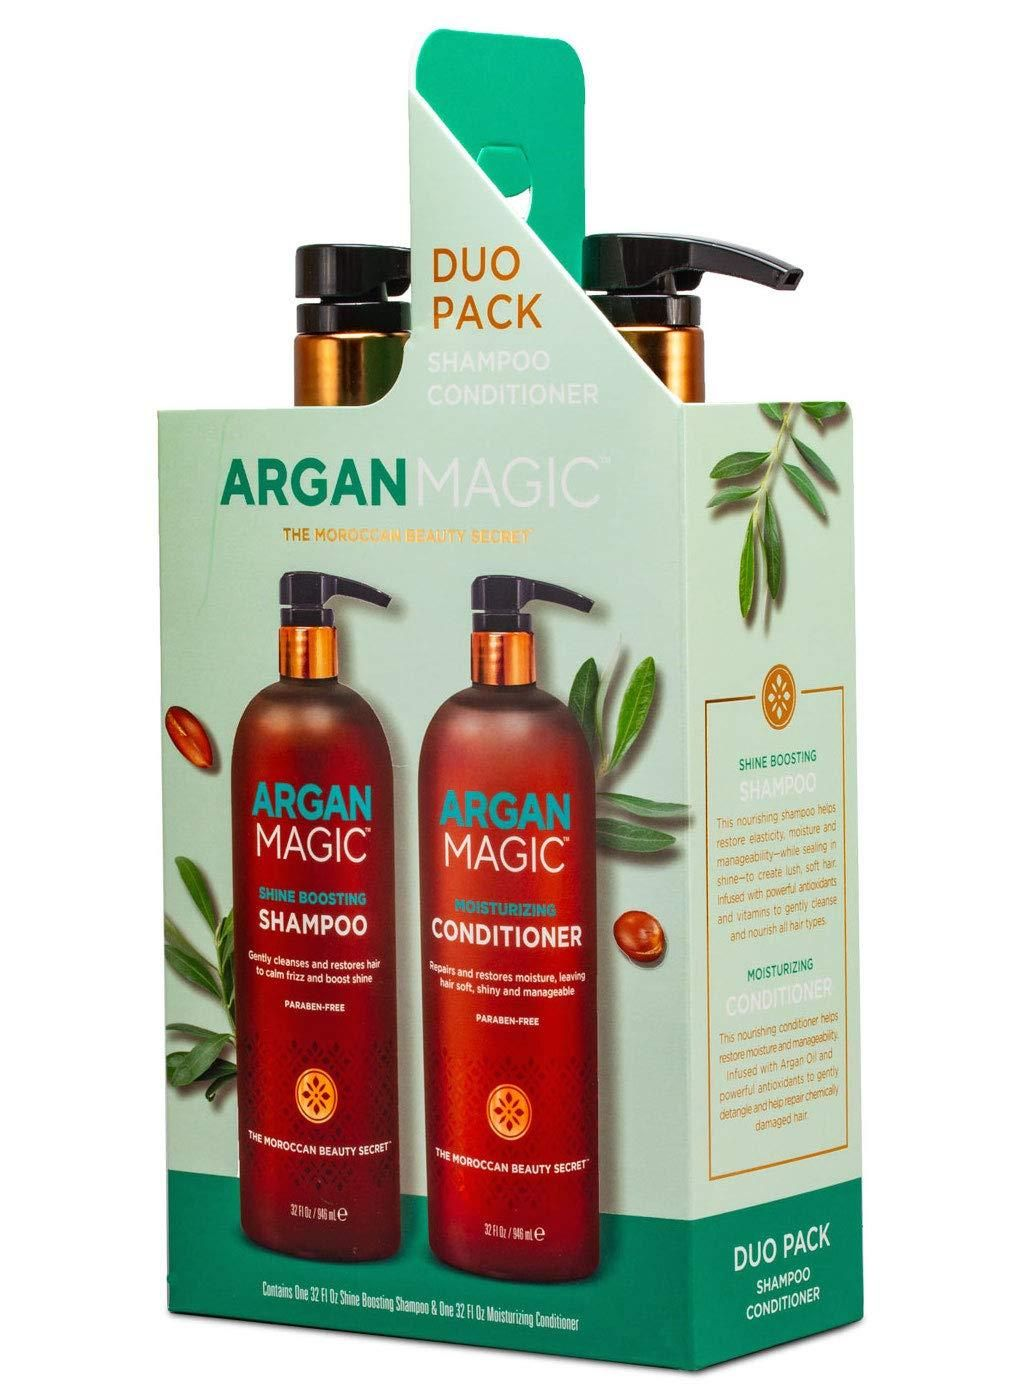 Argan magic shampoo and conditioner duo for dry and